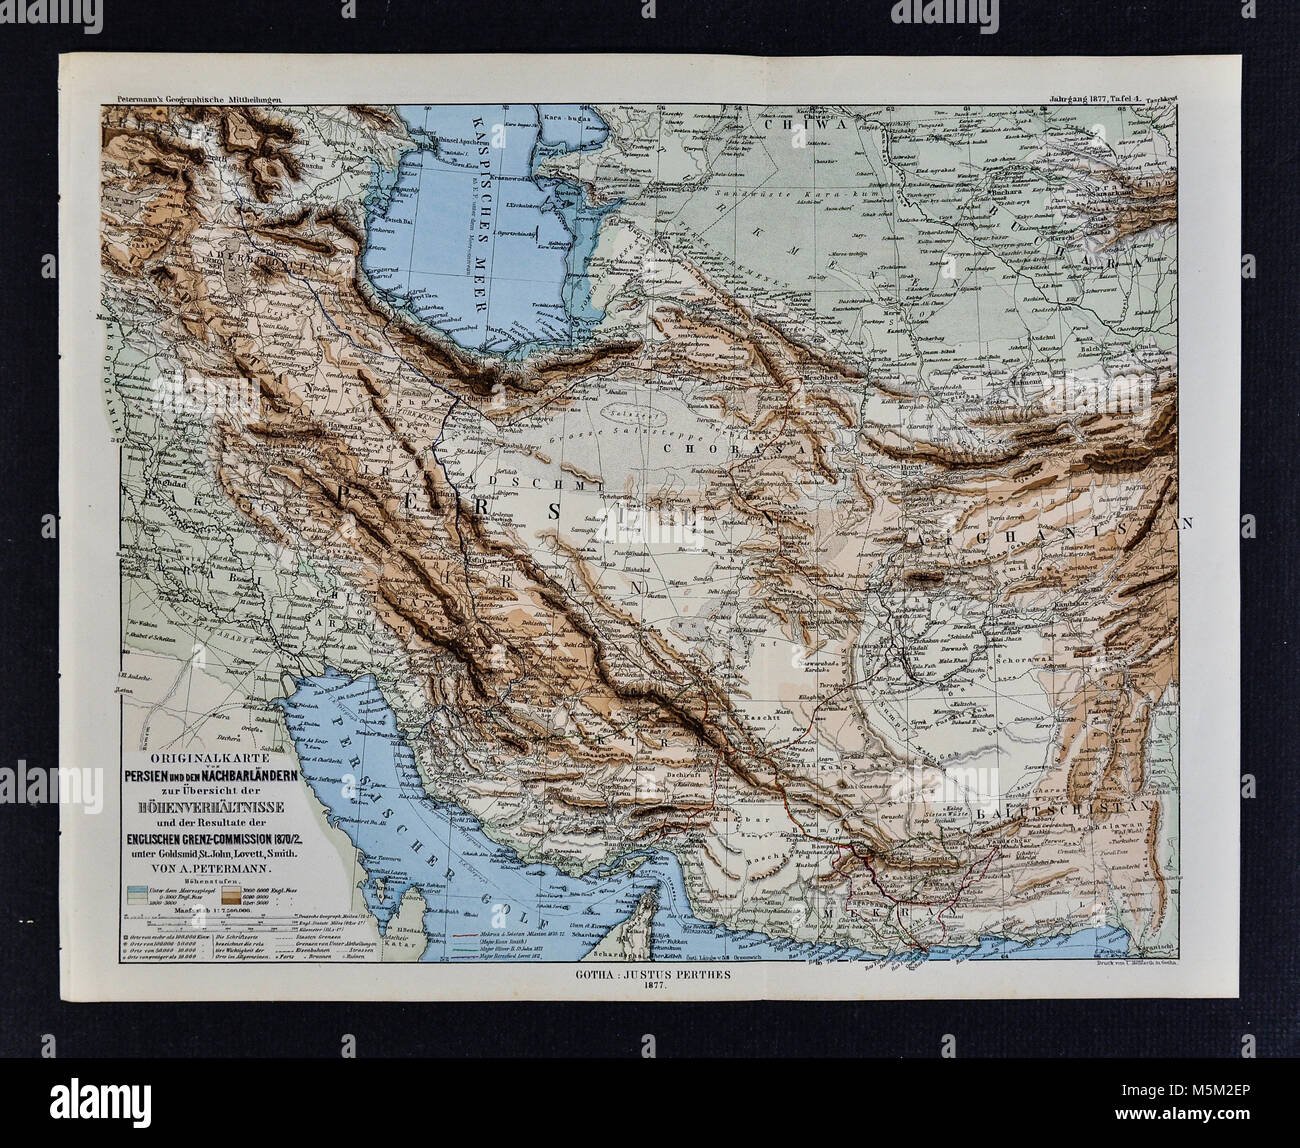 1877 petermann mittheilungen map middle east persia iran iraq 1877 petermann mittheilungen map middle east persia iran iraq afghanistan asia gumiabroncs Gallery